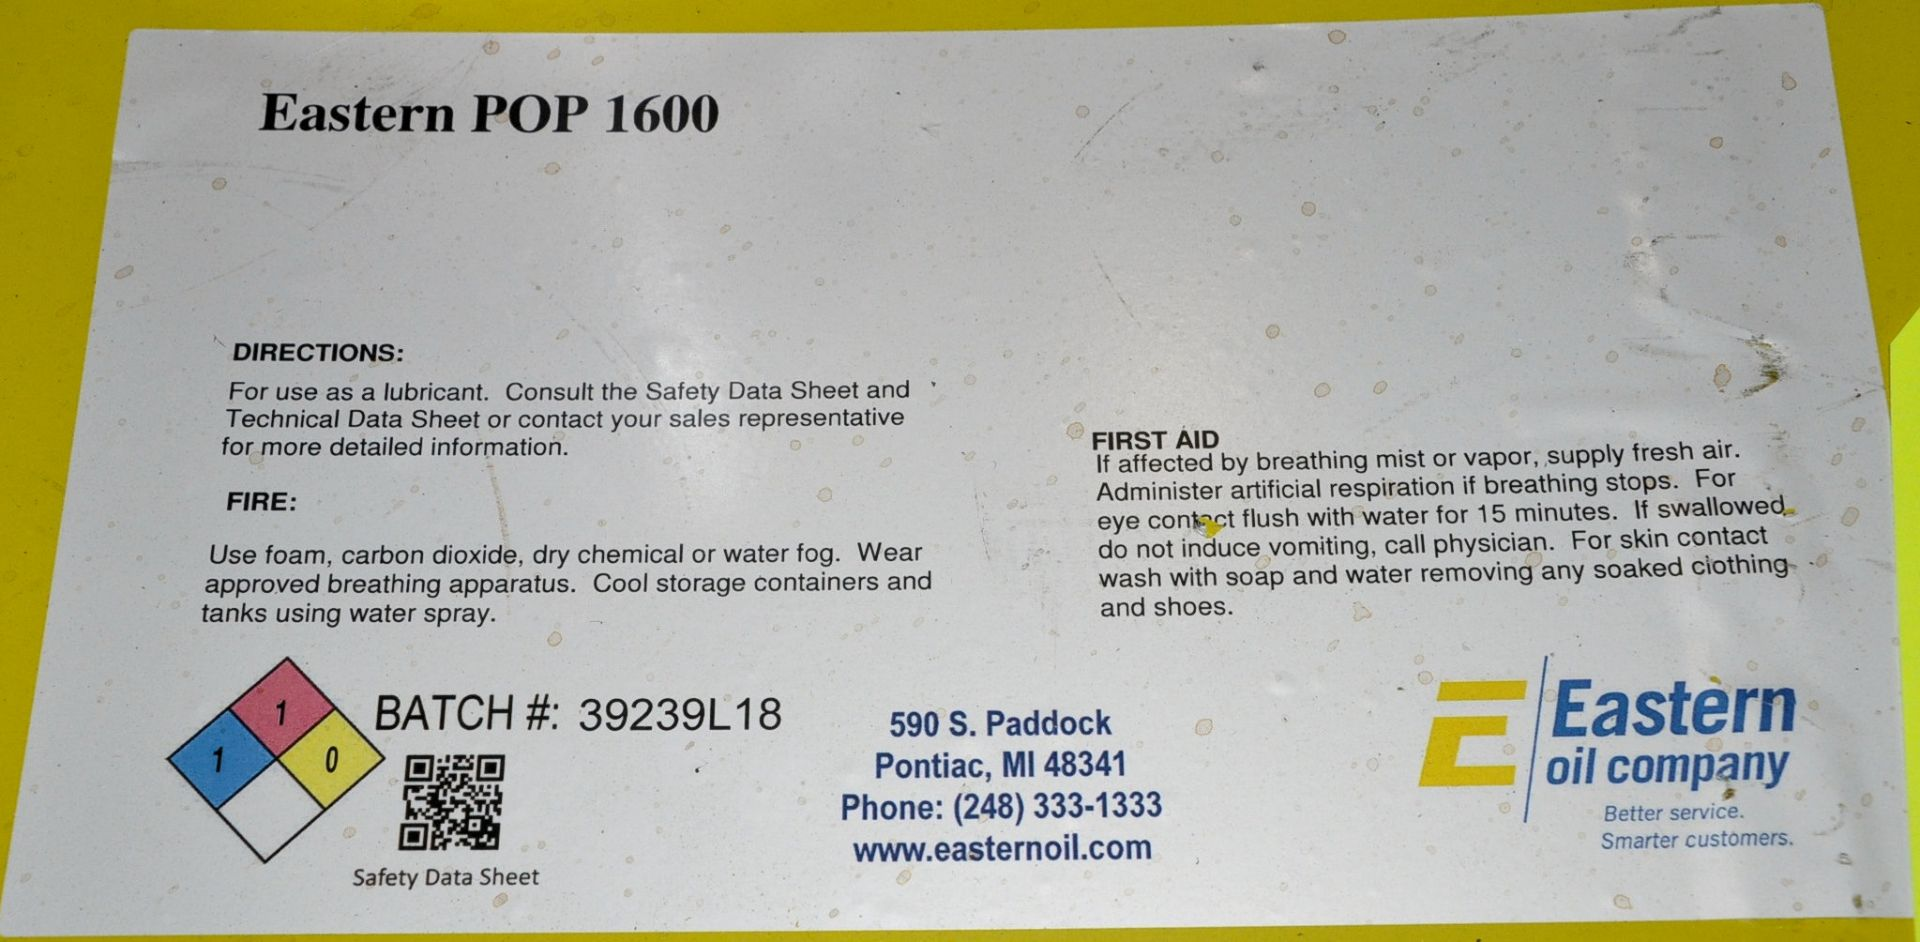 Lot-(3) 55-Gallon Drums of Eastern POP 1600 Paraffinic Process Oil, (Oils Storage Building), (Yellow - Image 2 of 2